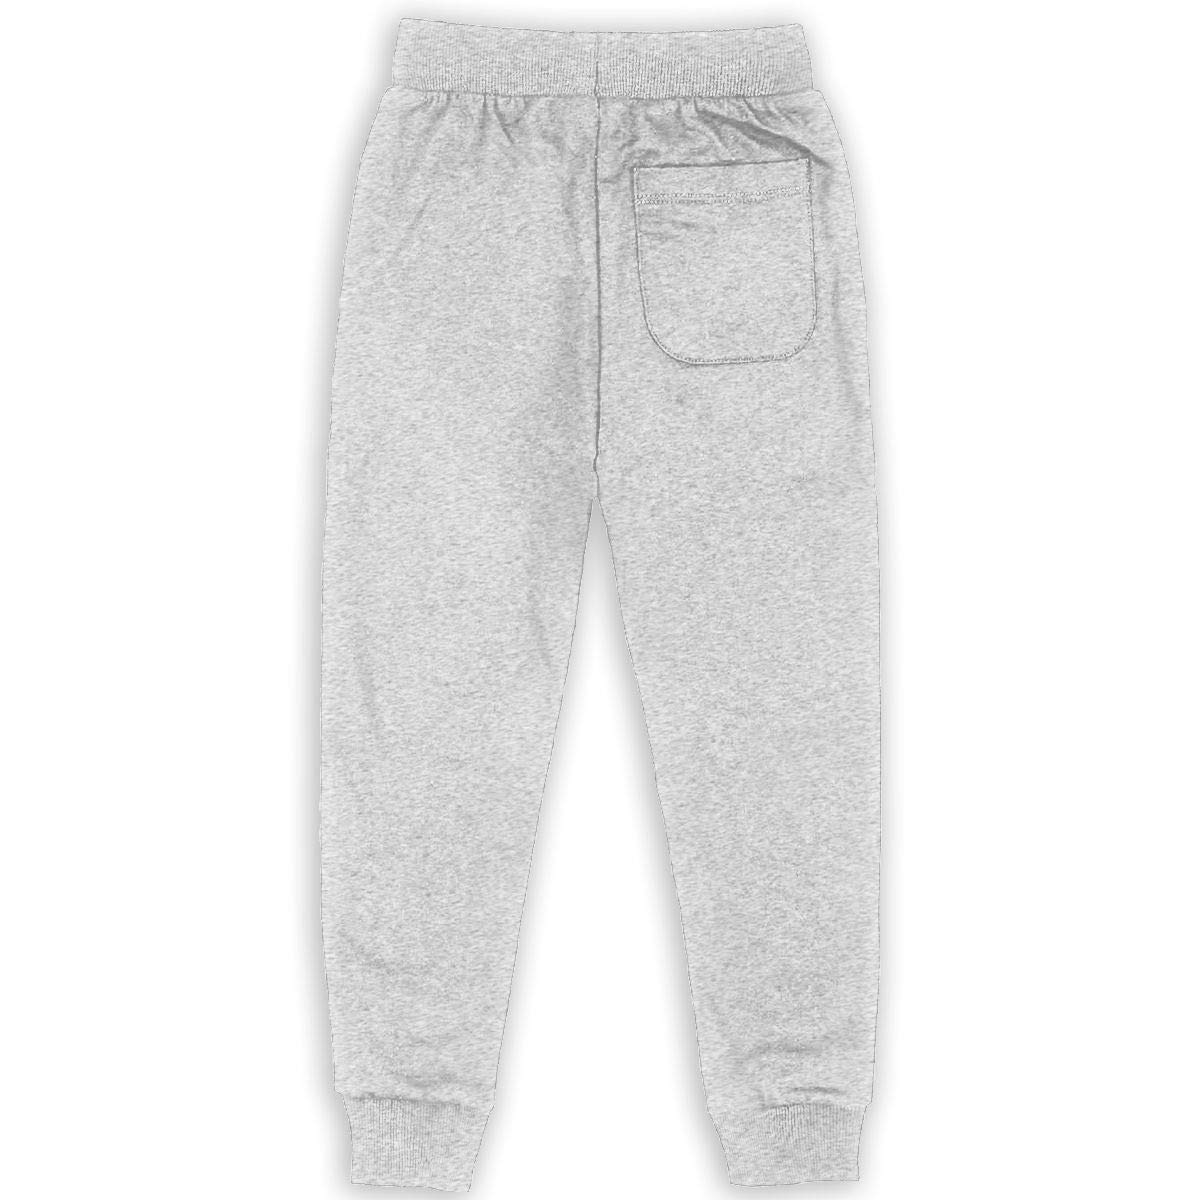 Carrteid Pineapple Boys Fleece Pant Jogger Fleece Pants